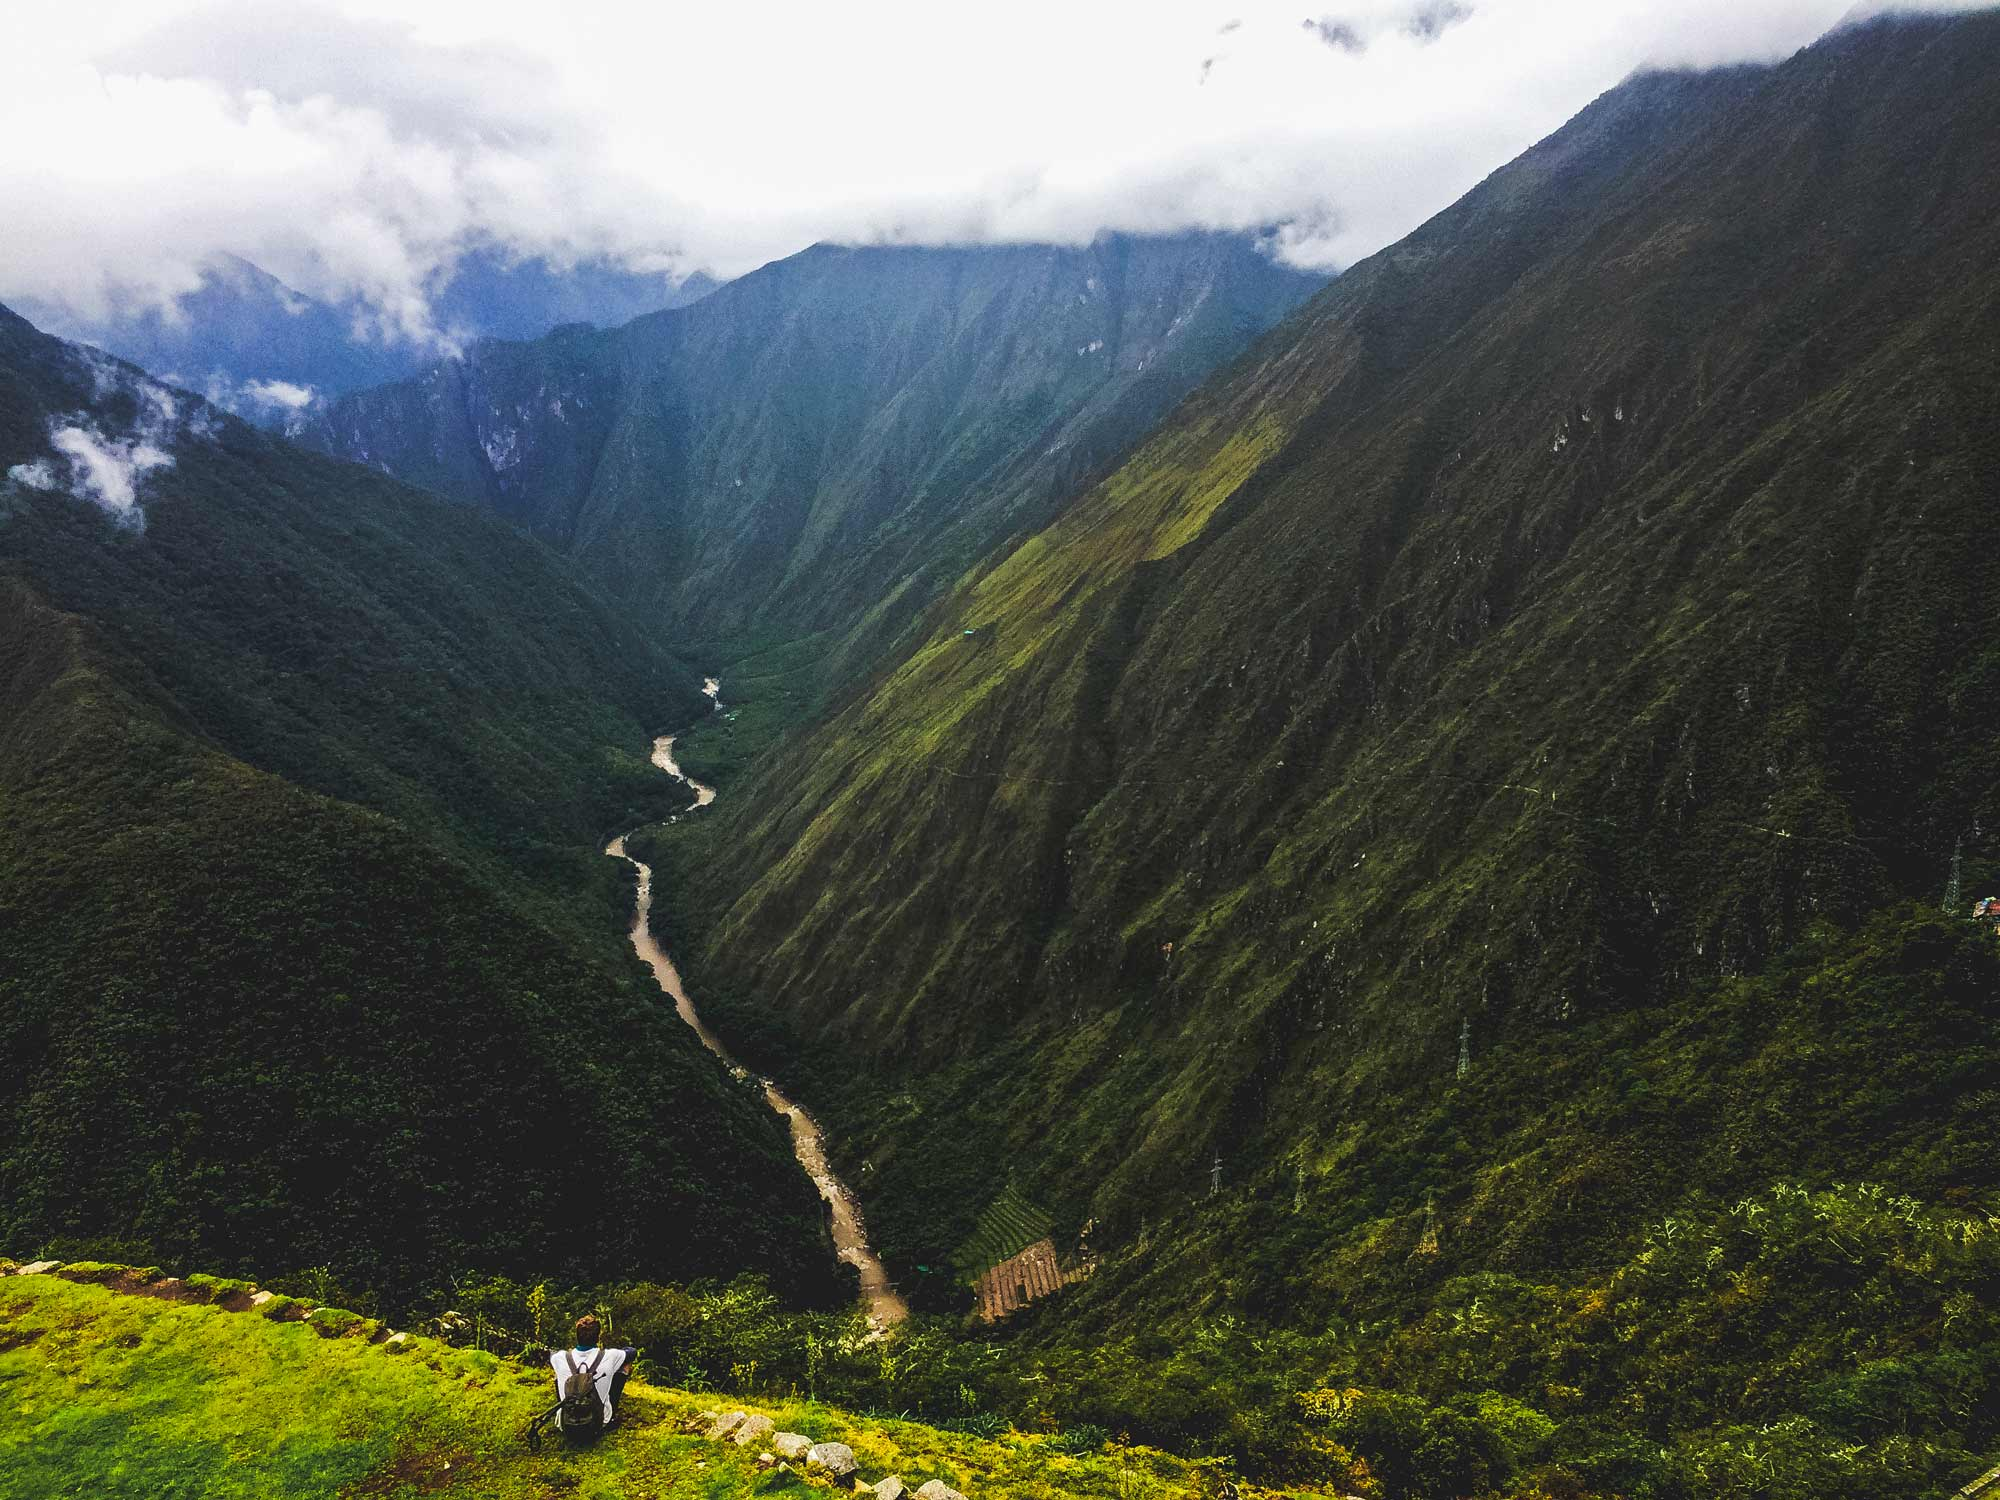 Trekking the Inca Trail to Machu Pichu. TRX Traveller Adam Atkinson sitting on a cliff edge looking over a river and the Andes mountain on day 4 of the Inca Trail trek